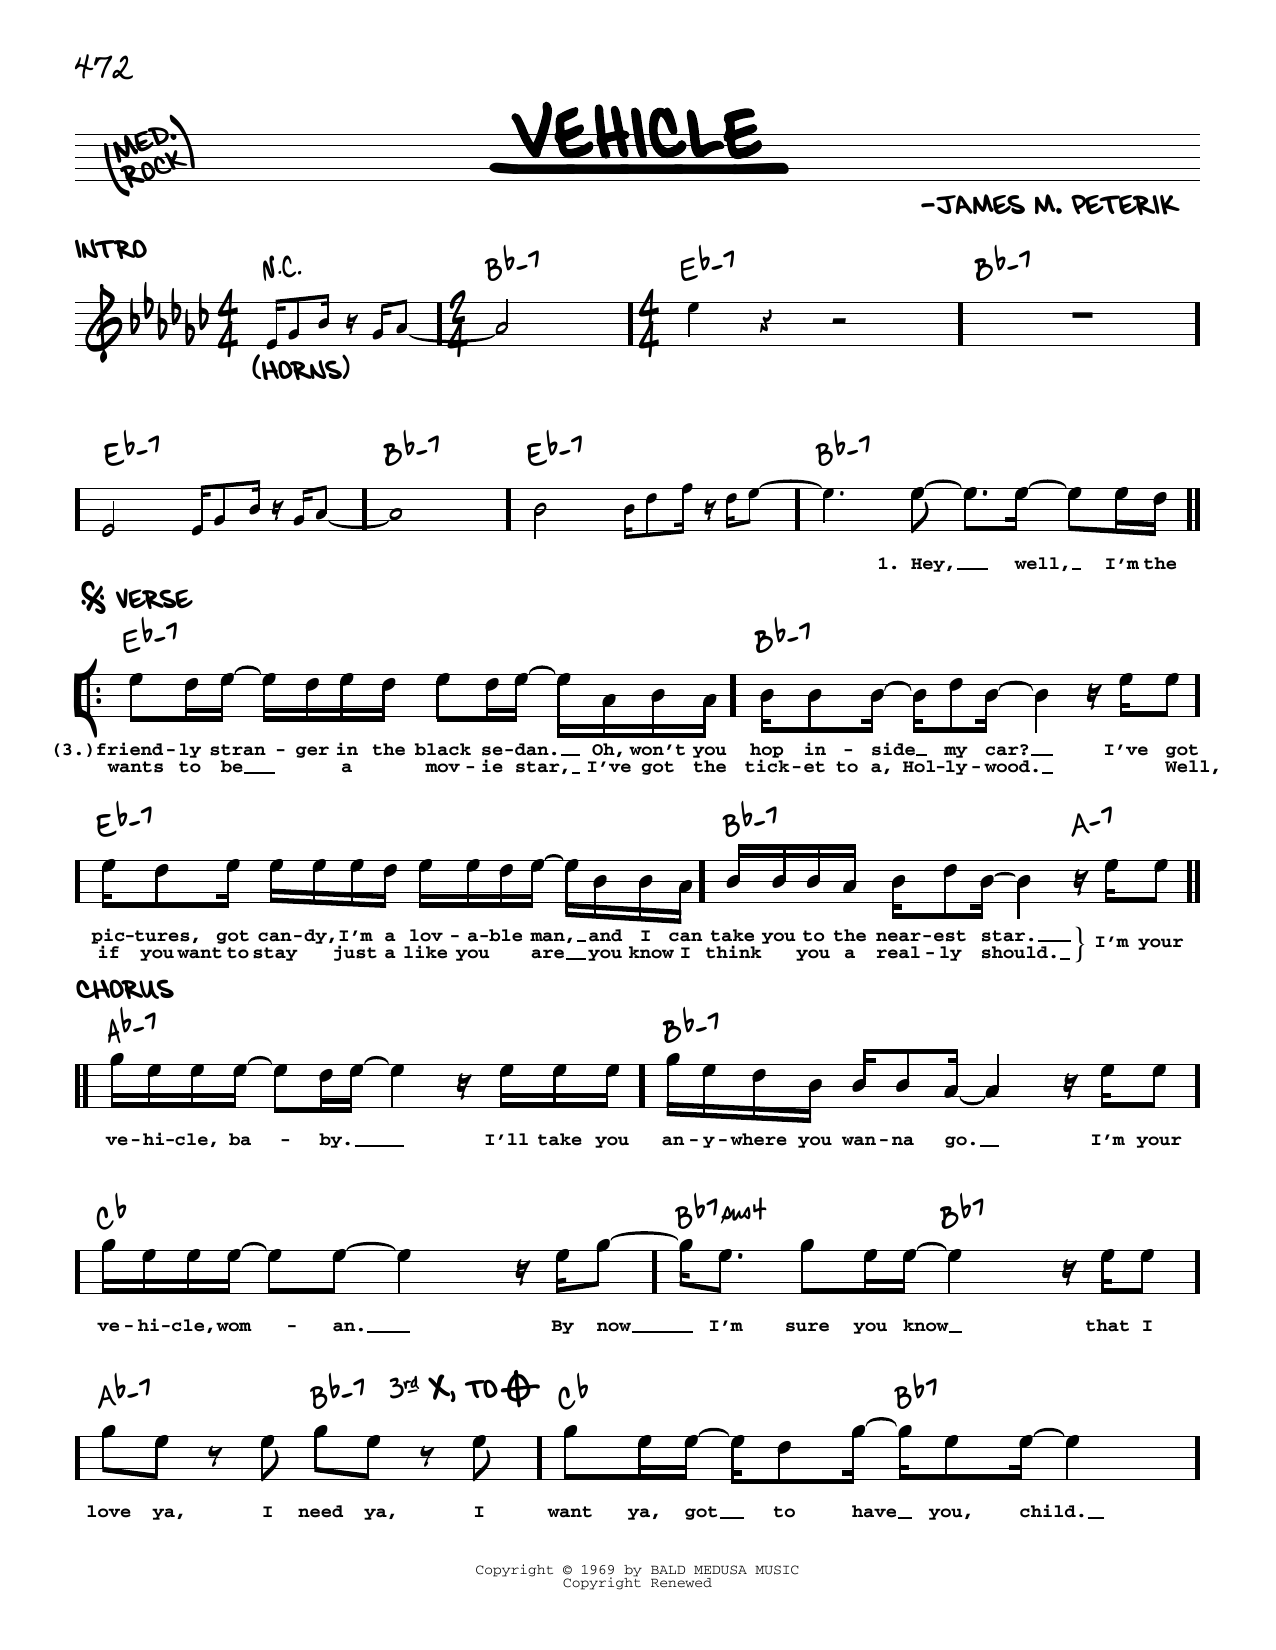 The Ides Of March Vehicle sheet music notes printable PDF score